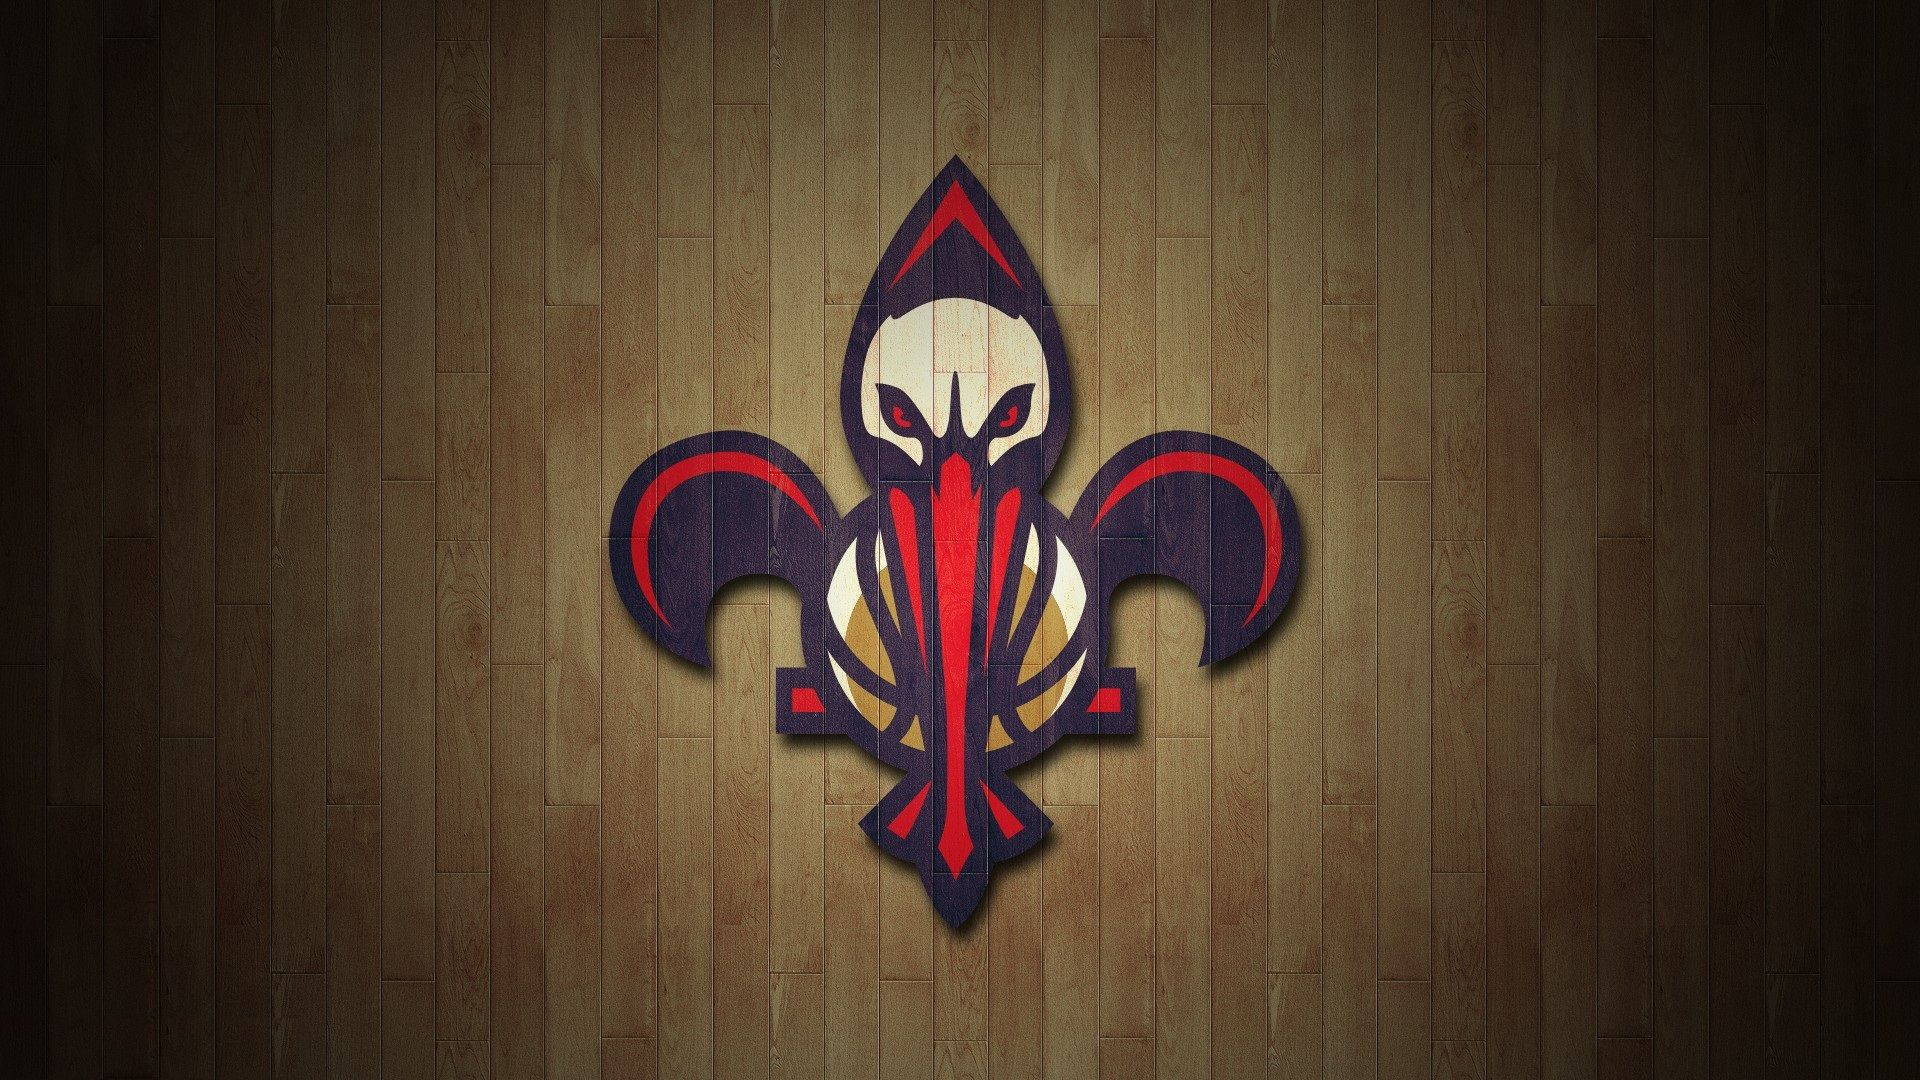 New Orleans Pelicans Wallpaper For Mac Backgrounds Mac